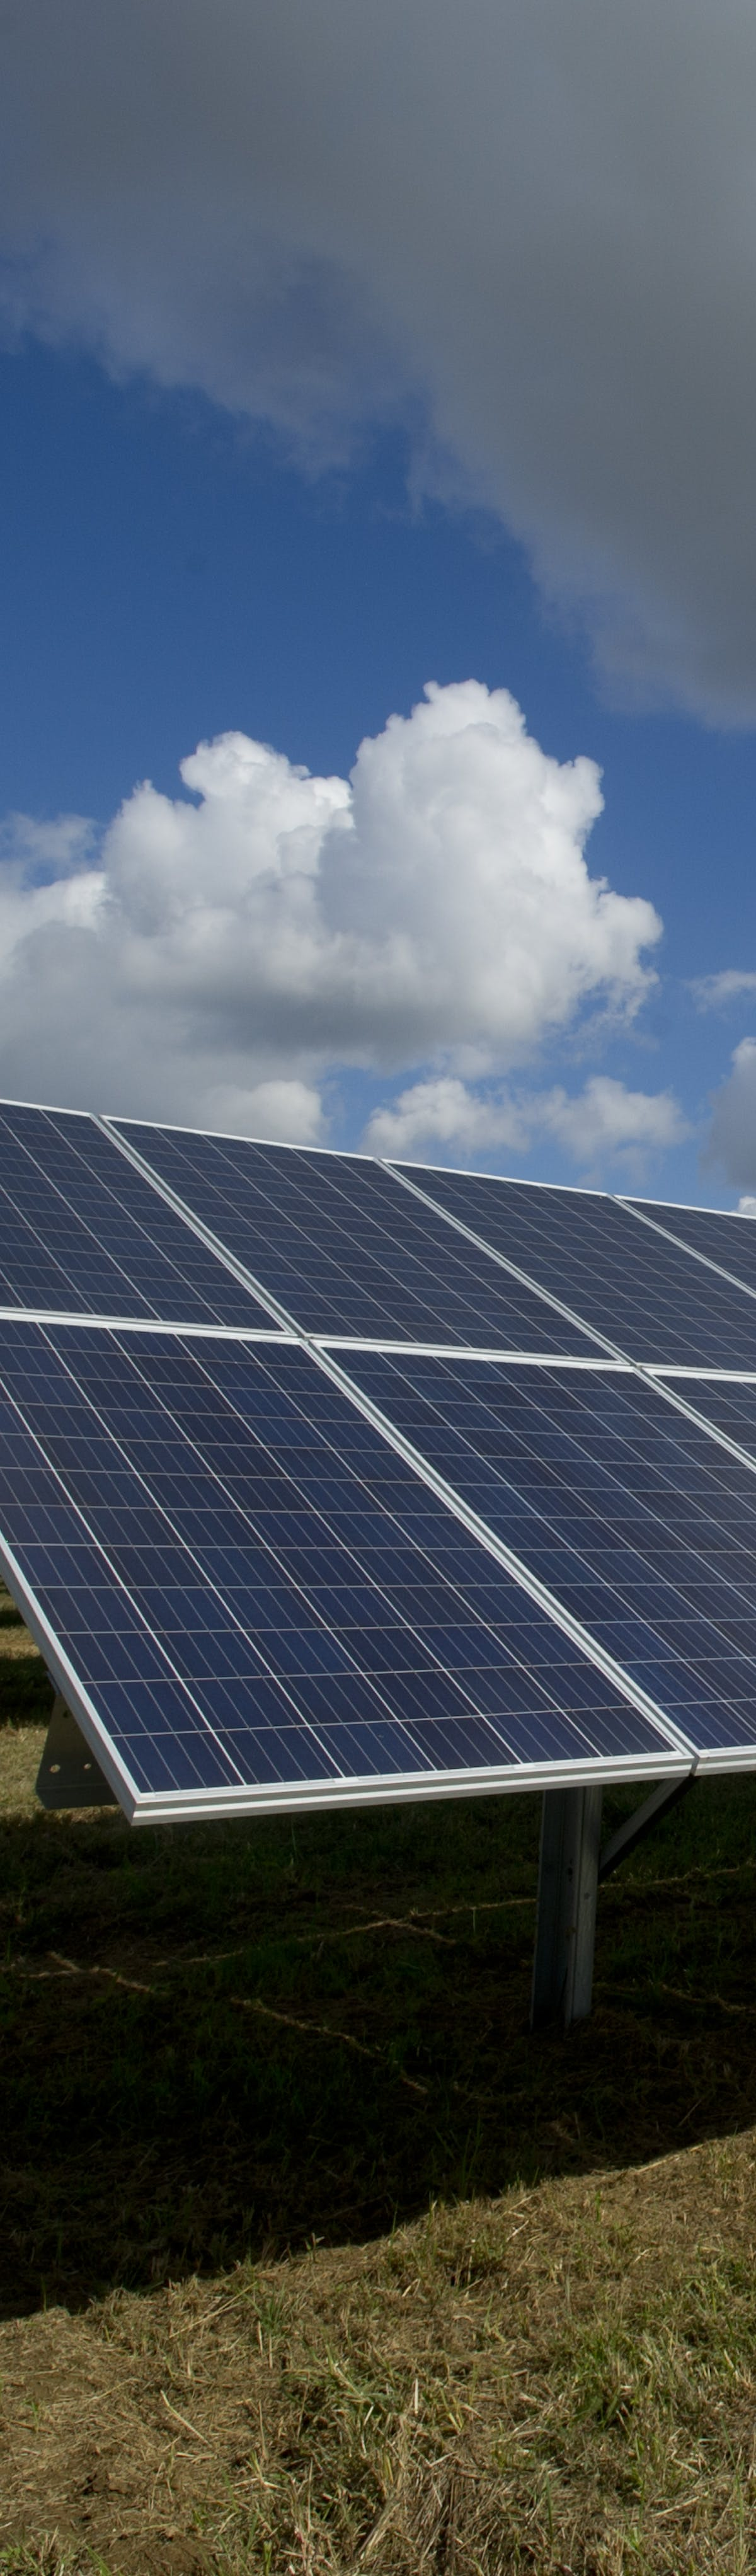 How Solar Panels Could Enable 100 Percent Clean Energy Before 2050